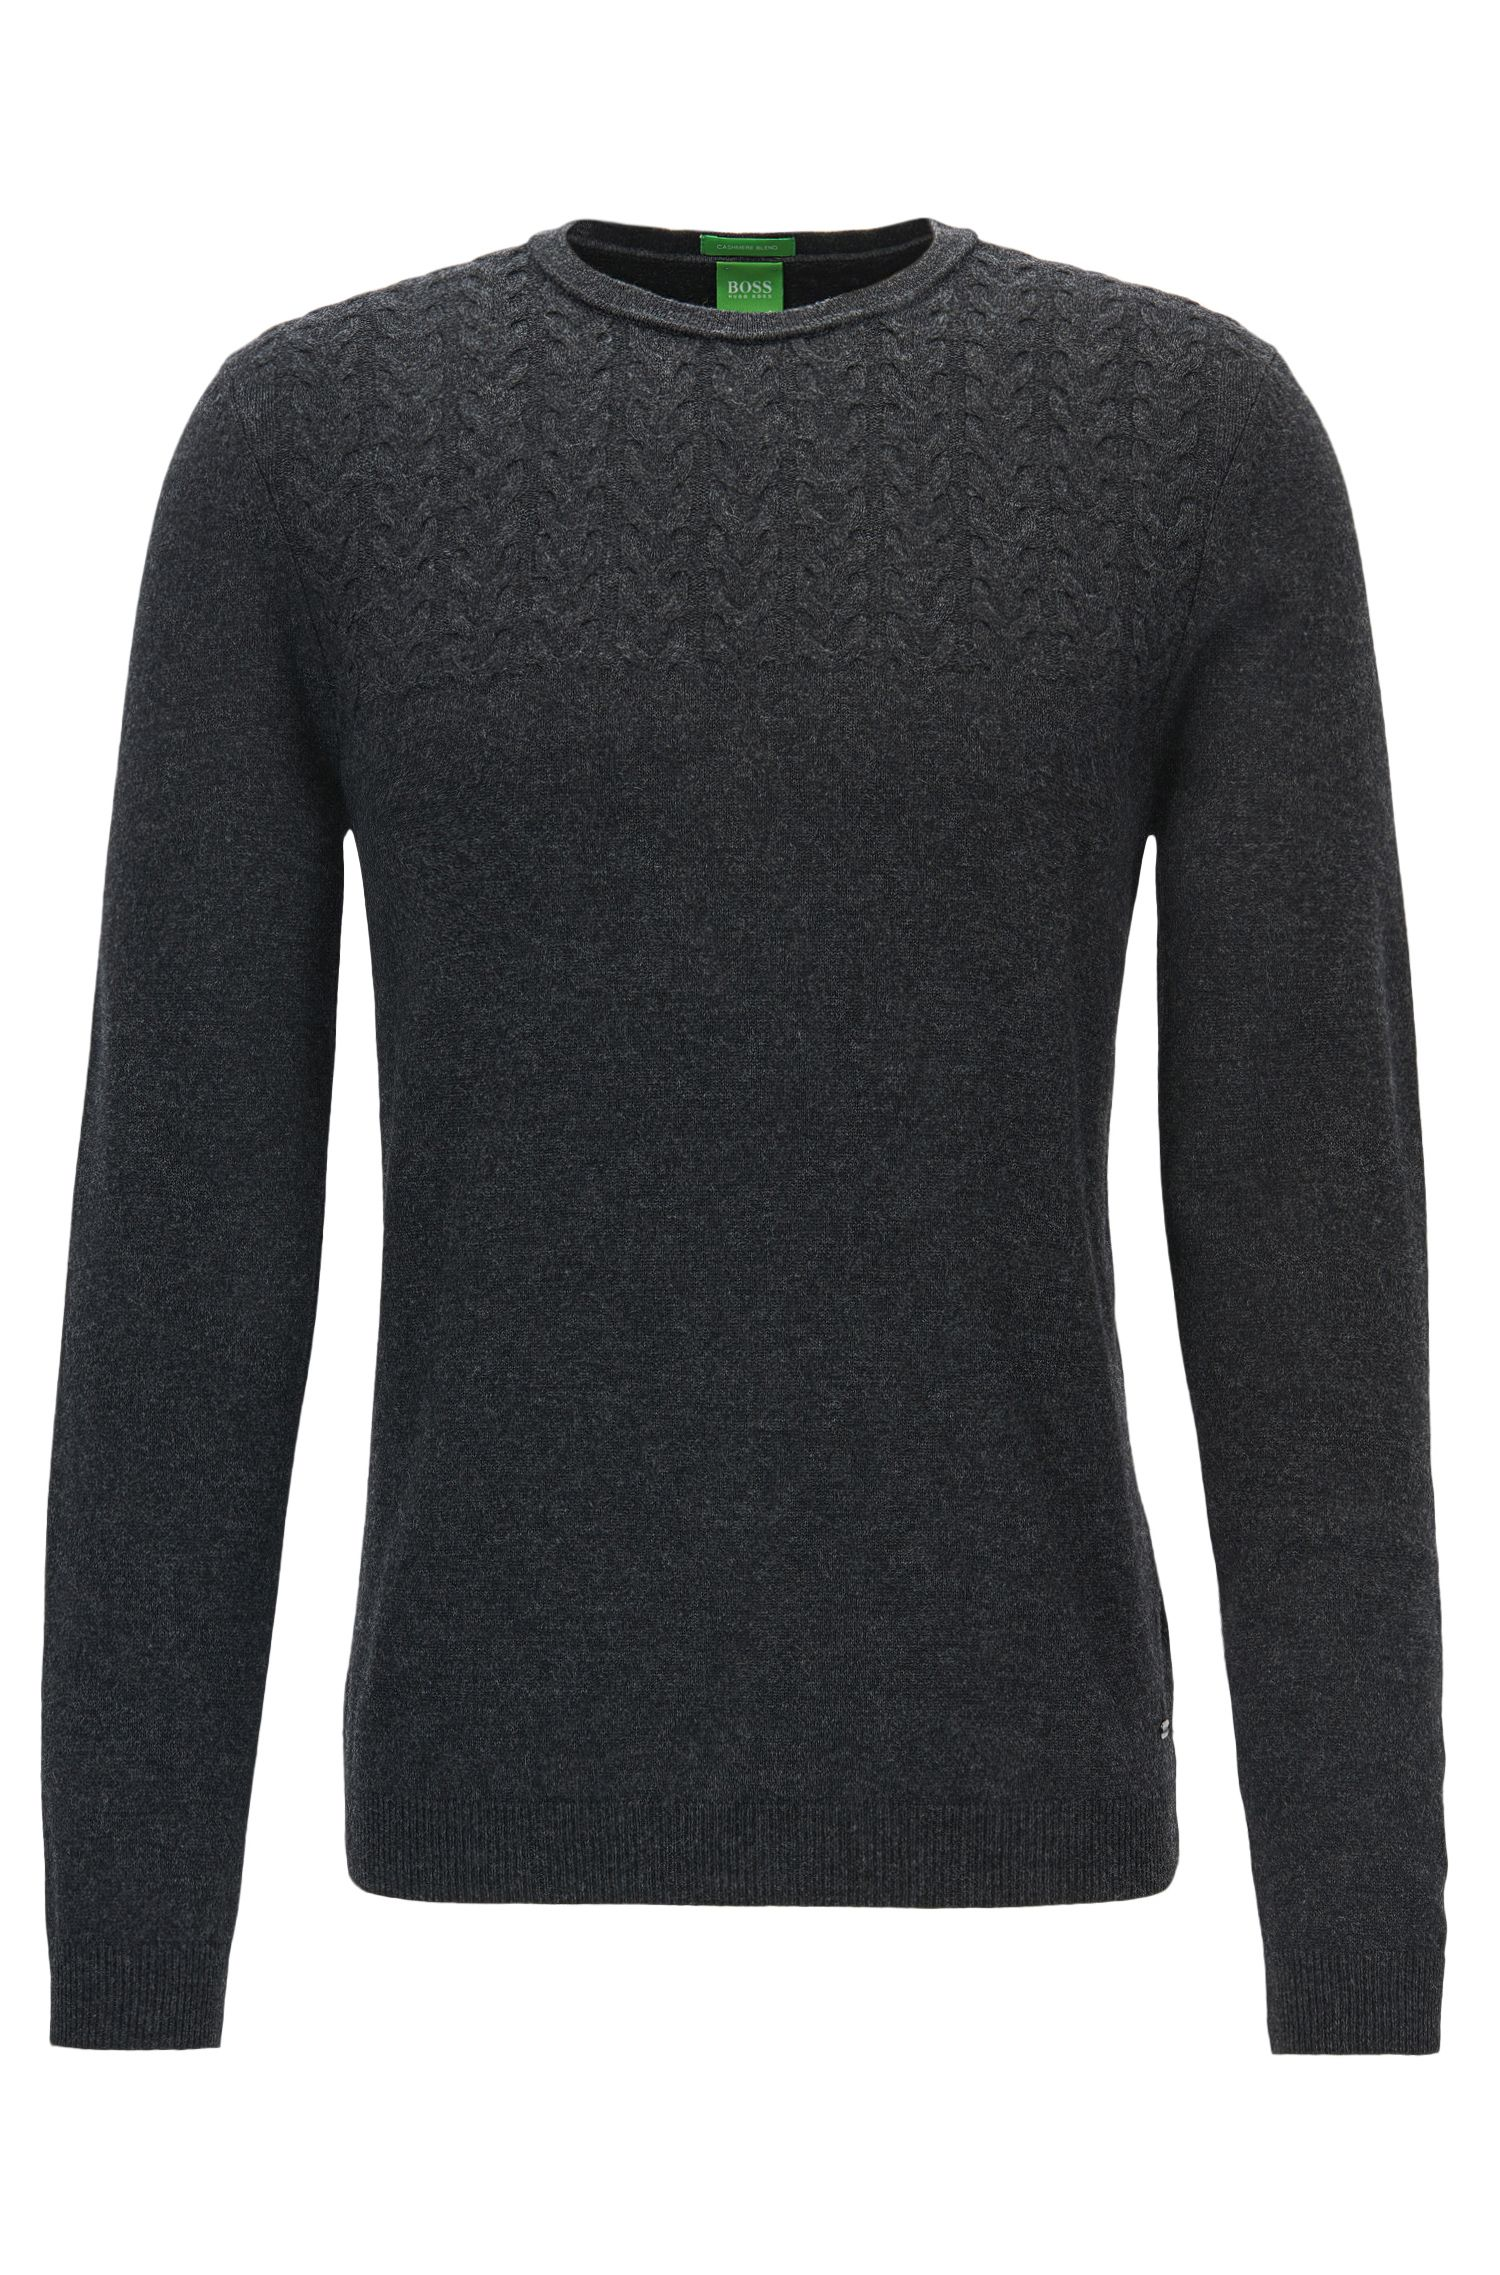 Crew-neck sweater in a modern cable knit